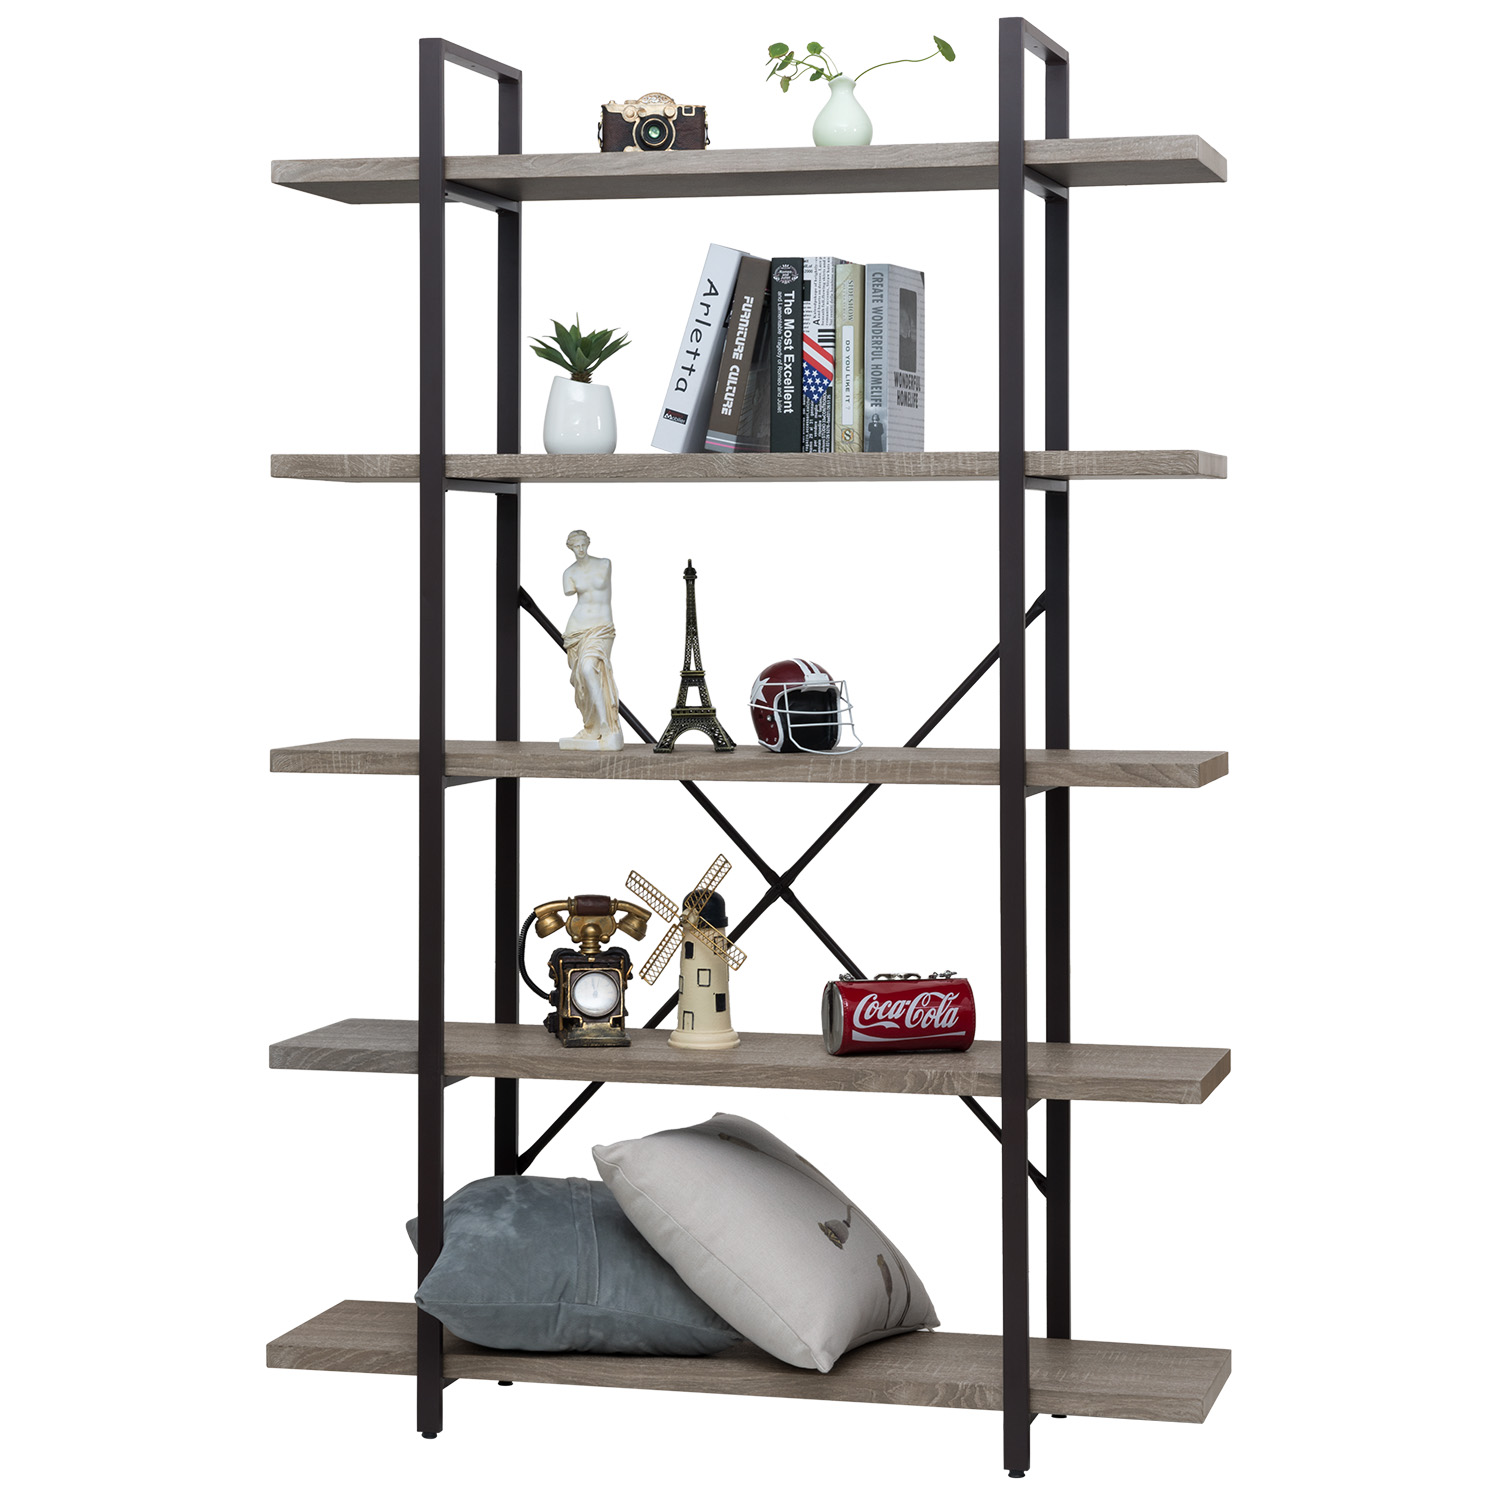 Ollieroo 5 Tier Rustic Vintage Bookcase Industrial Bookshelf, Grain Wood and Metal Shelves Furniture